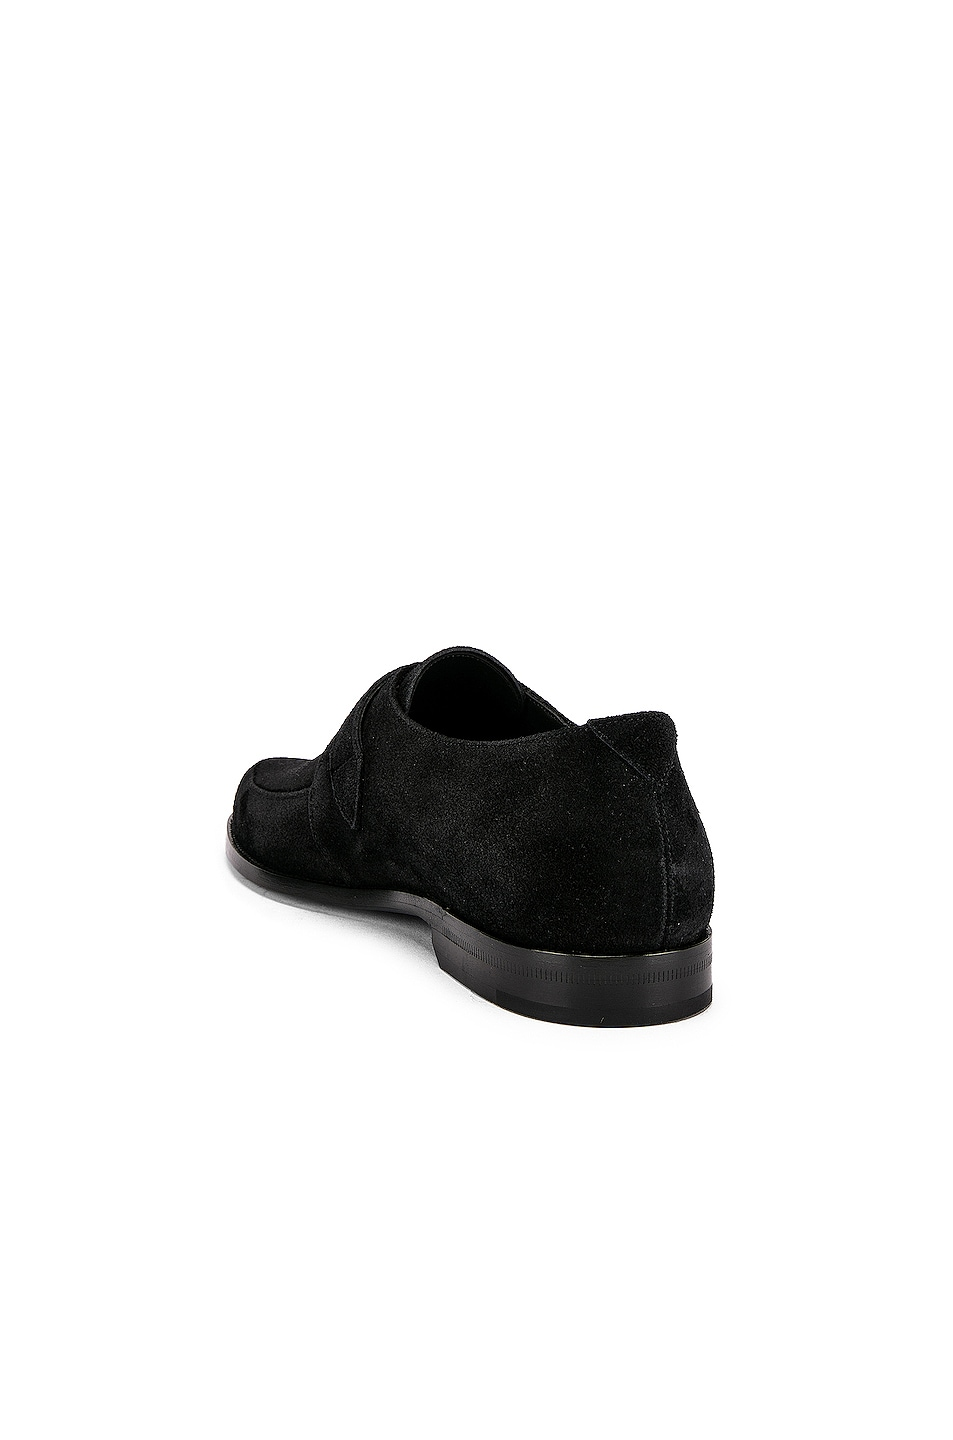 Image 3 of Saint Laurent Charles Dress Shoes in Black